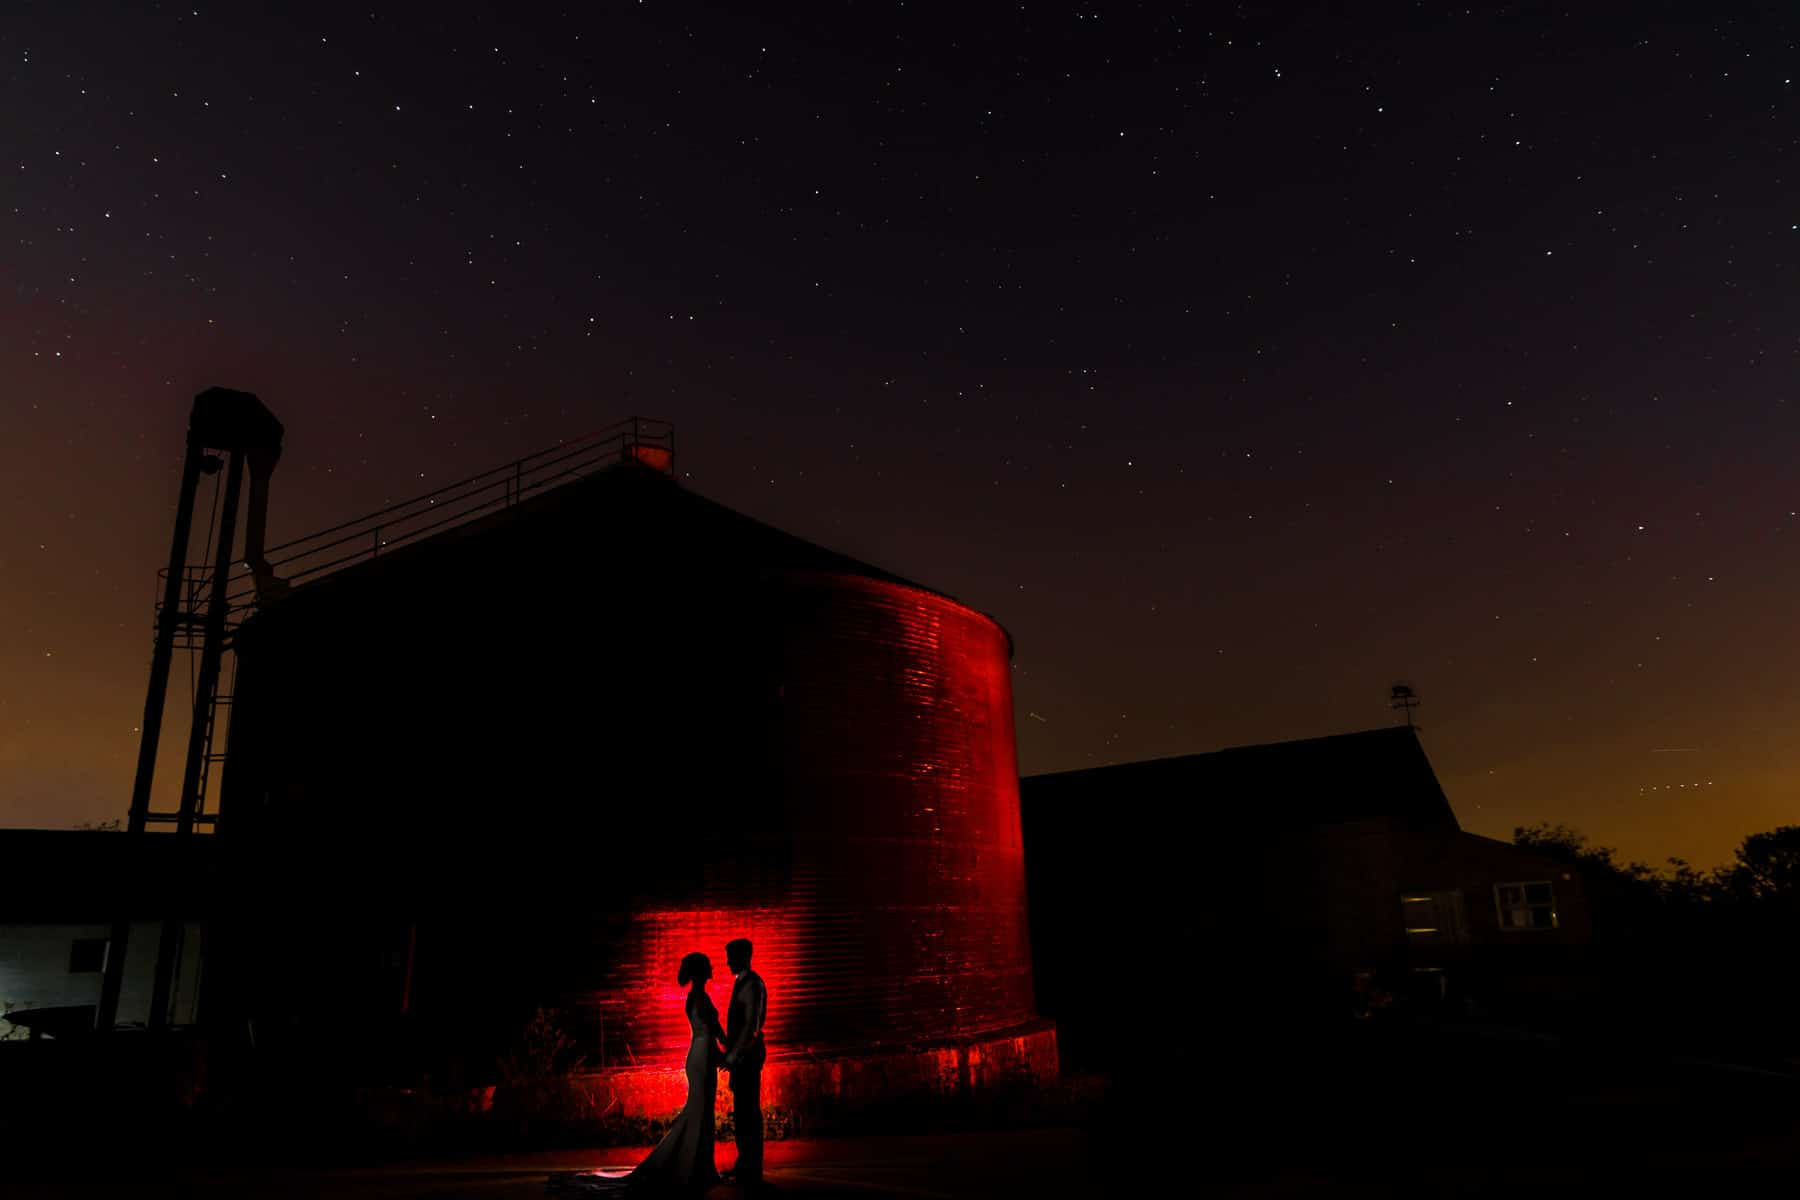 Slow shutter wedding photography showing the stars OCF mag mod accessories used